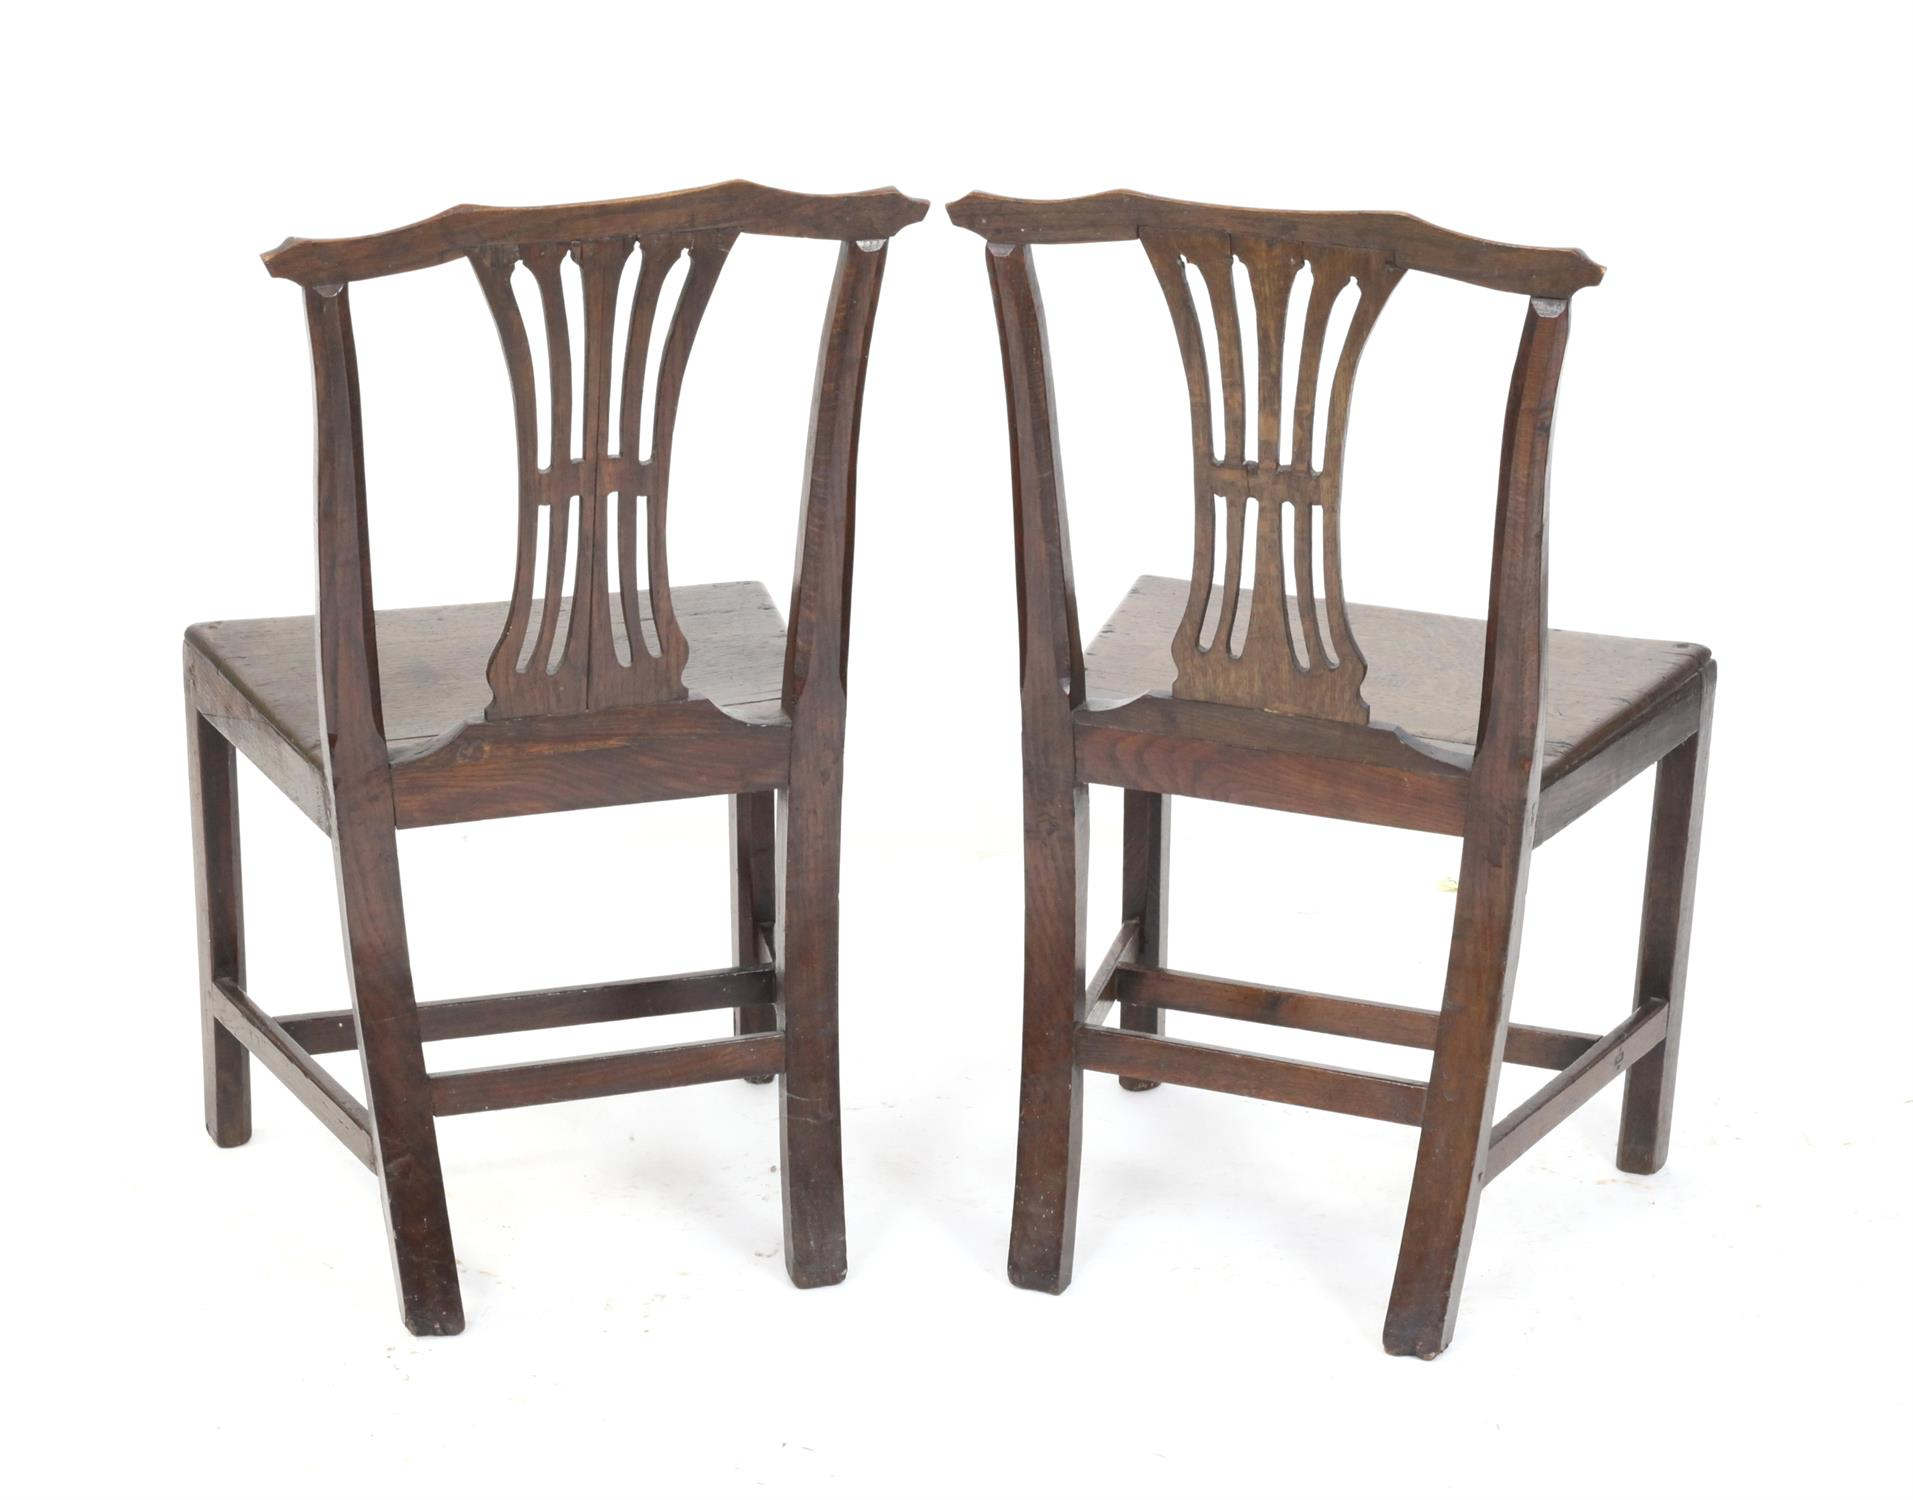 Pair of early 19th century oak country made dining chairs with carved splat backs on square - Image 2 of 2